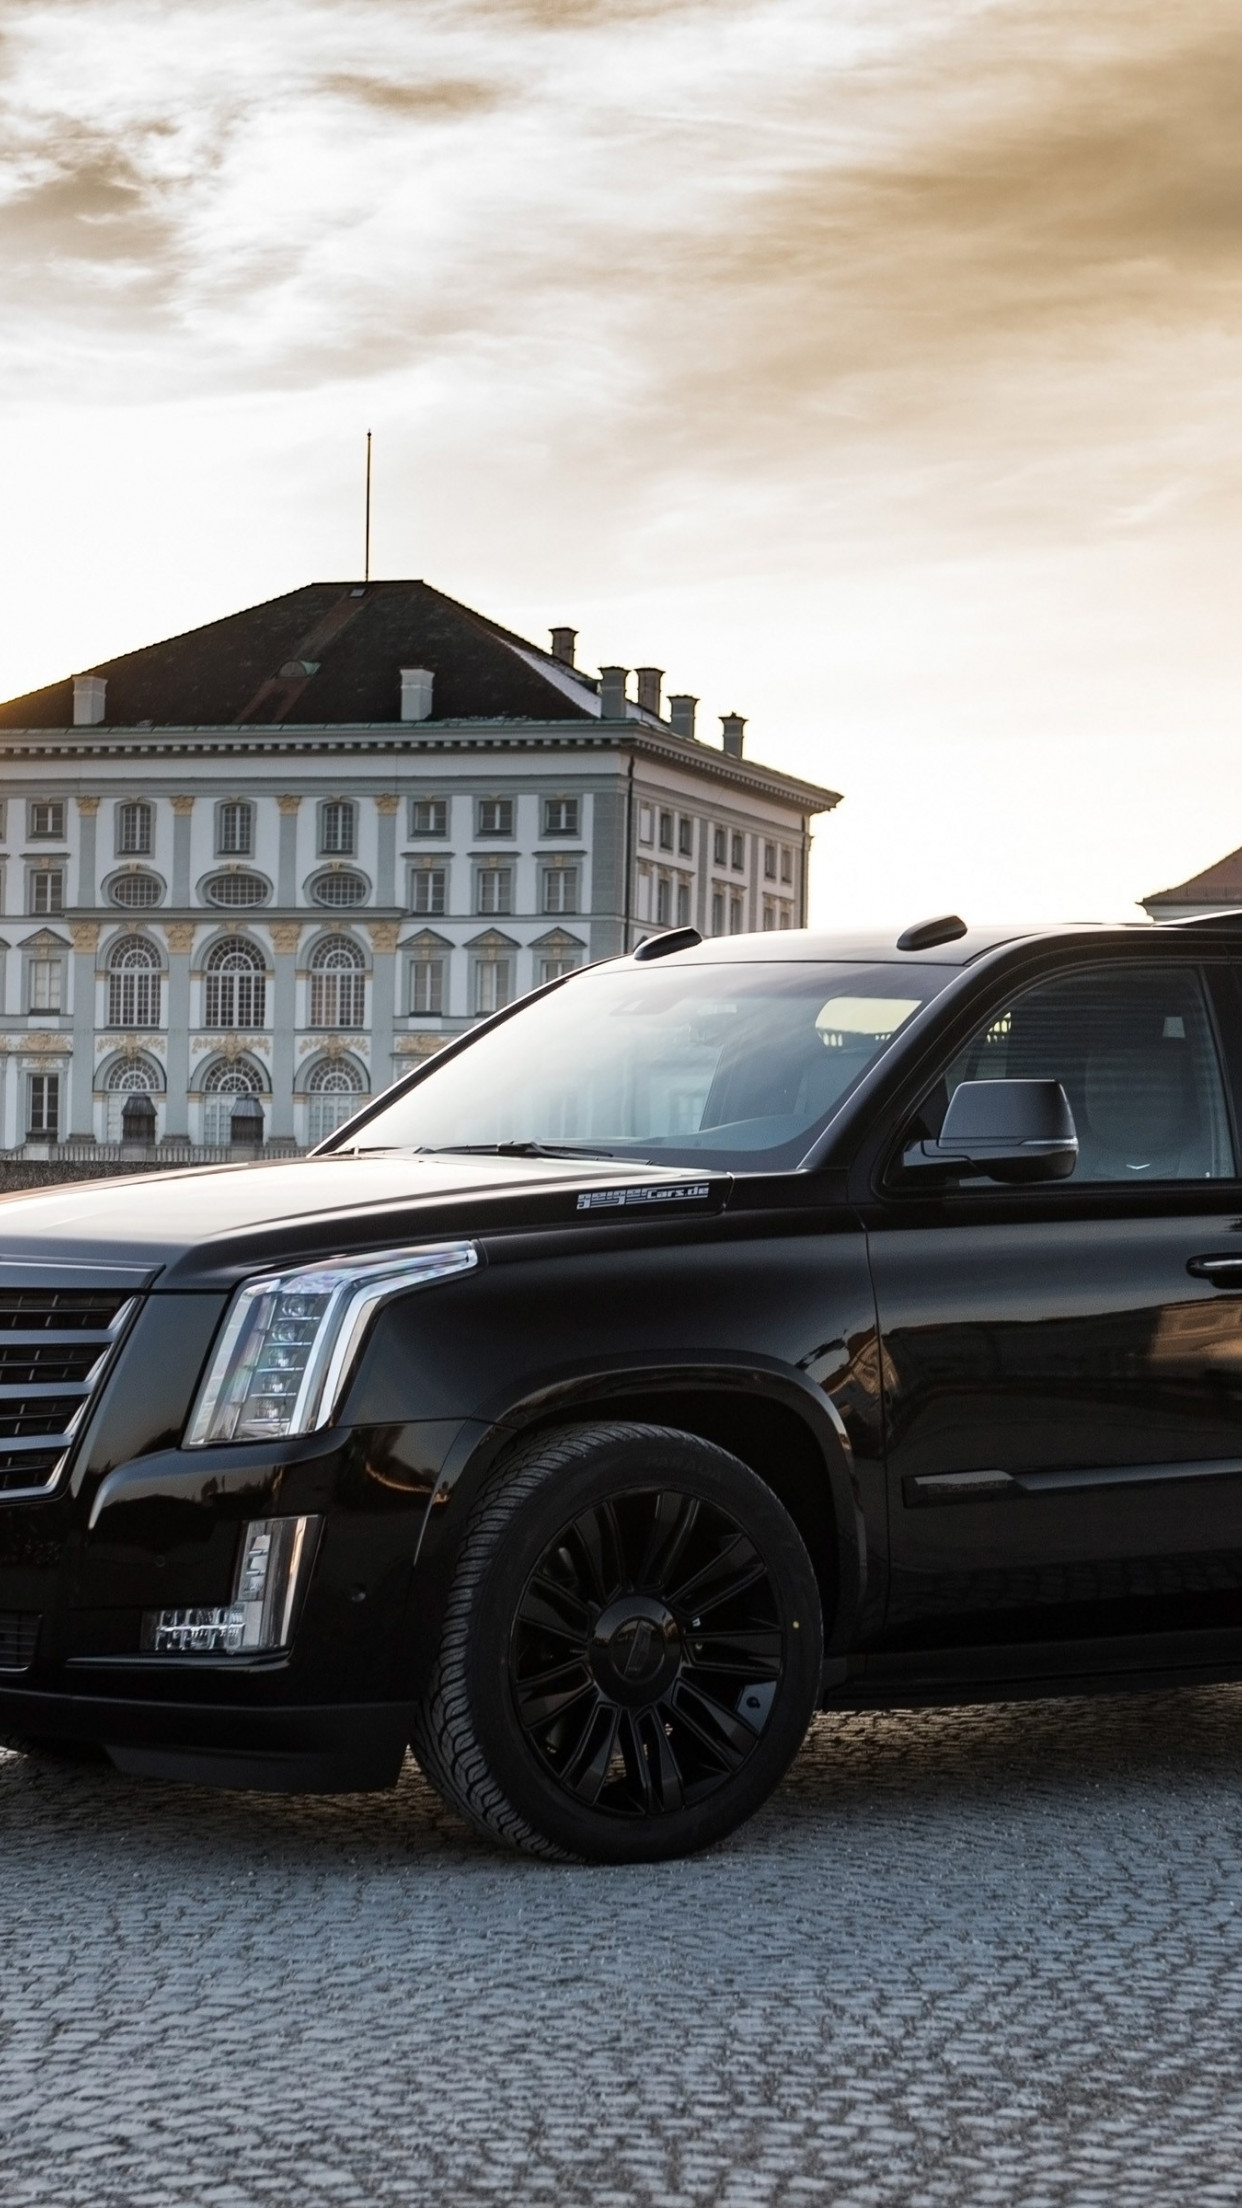 GeigerCars Cadillac Escalade Black Edition wallpaper 1242x2208